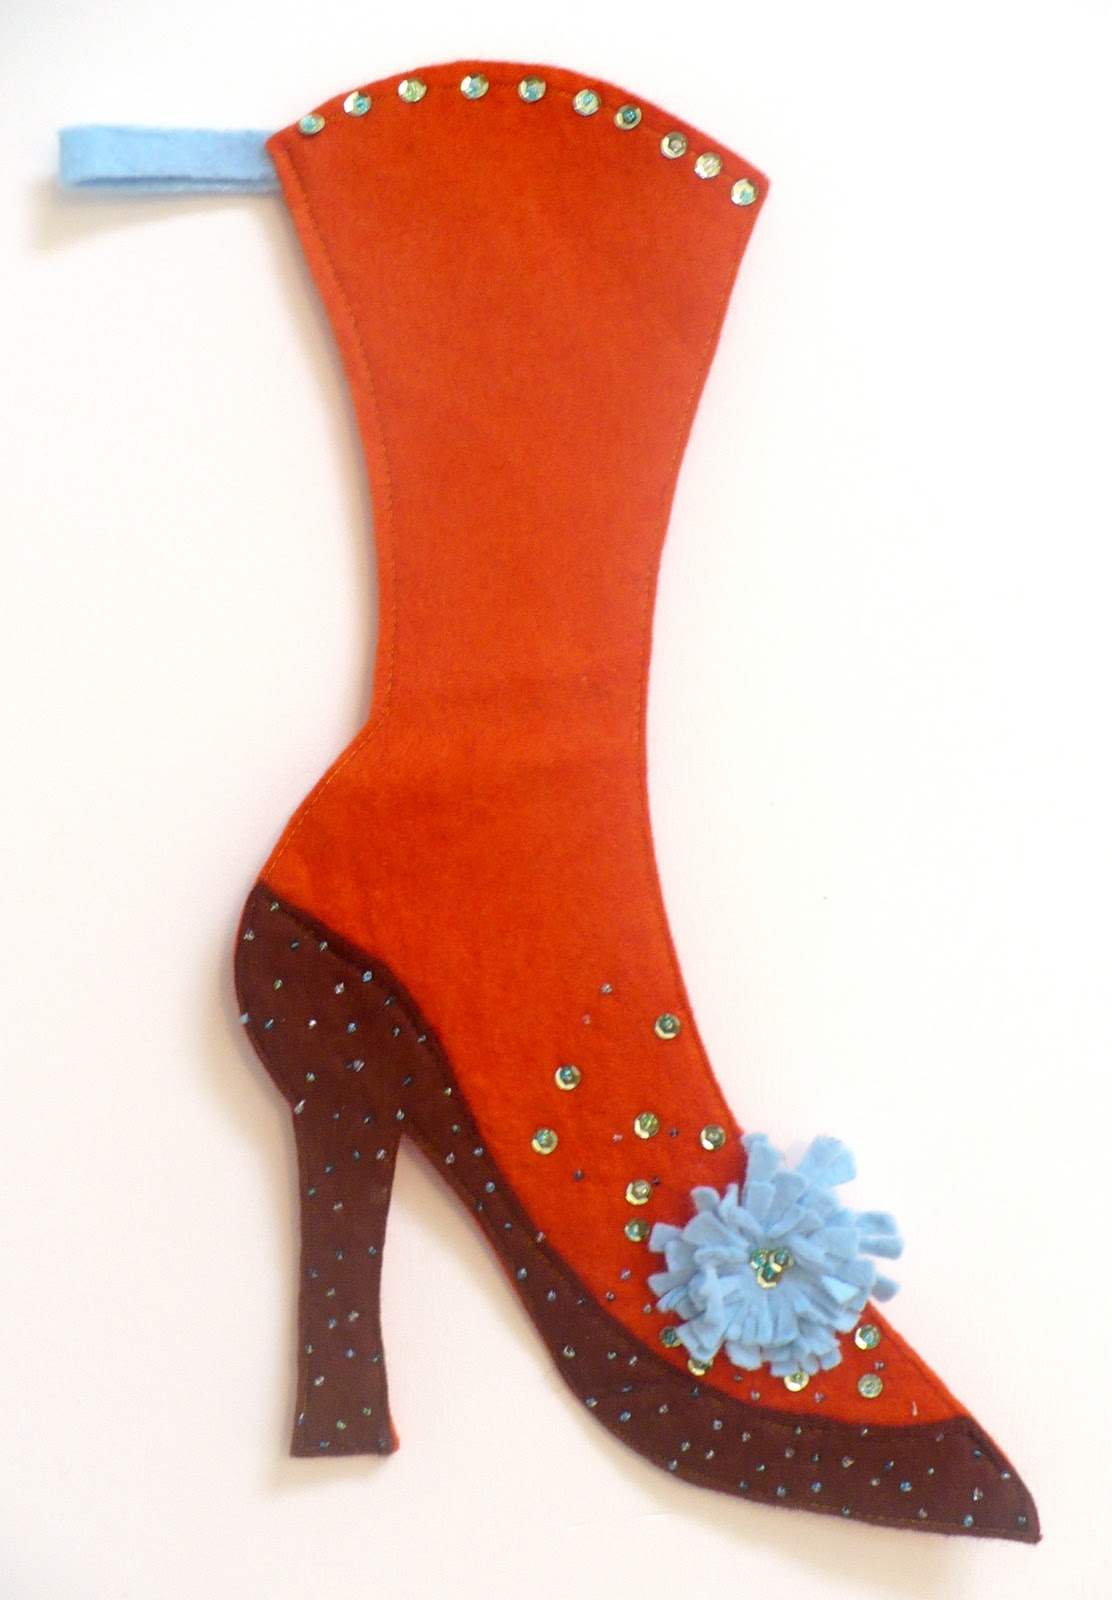 A sexy Christmas stocking to hang on your mantlepiece.